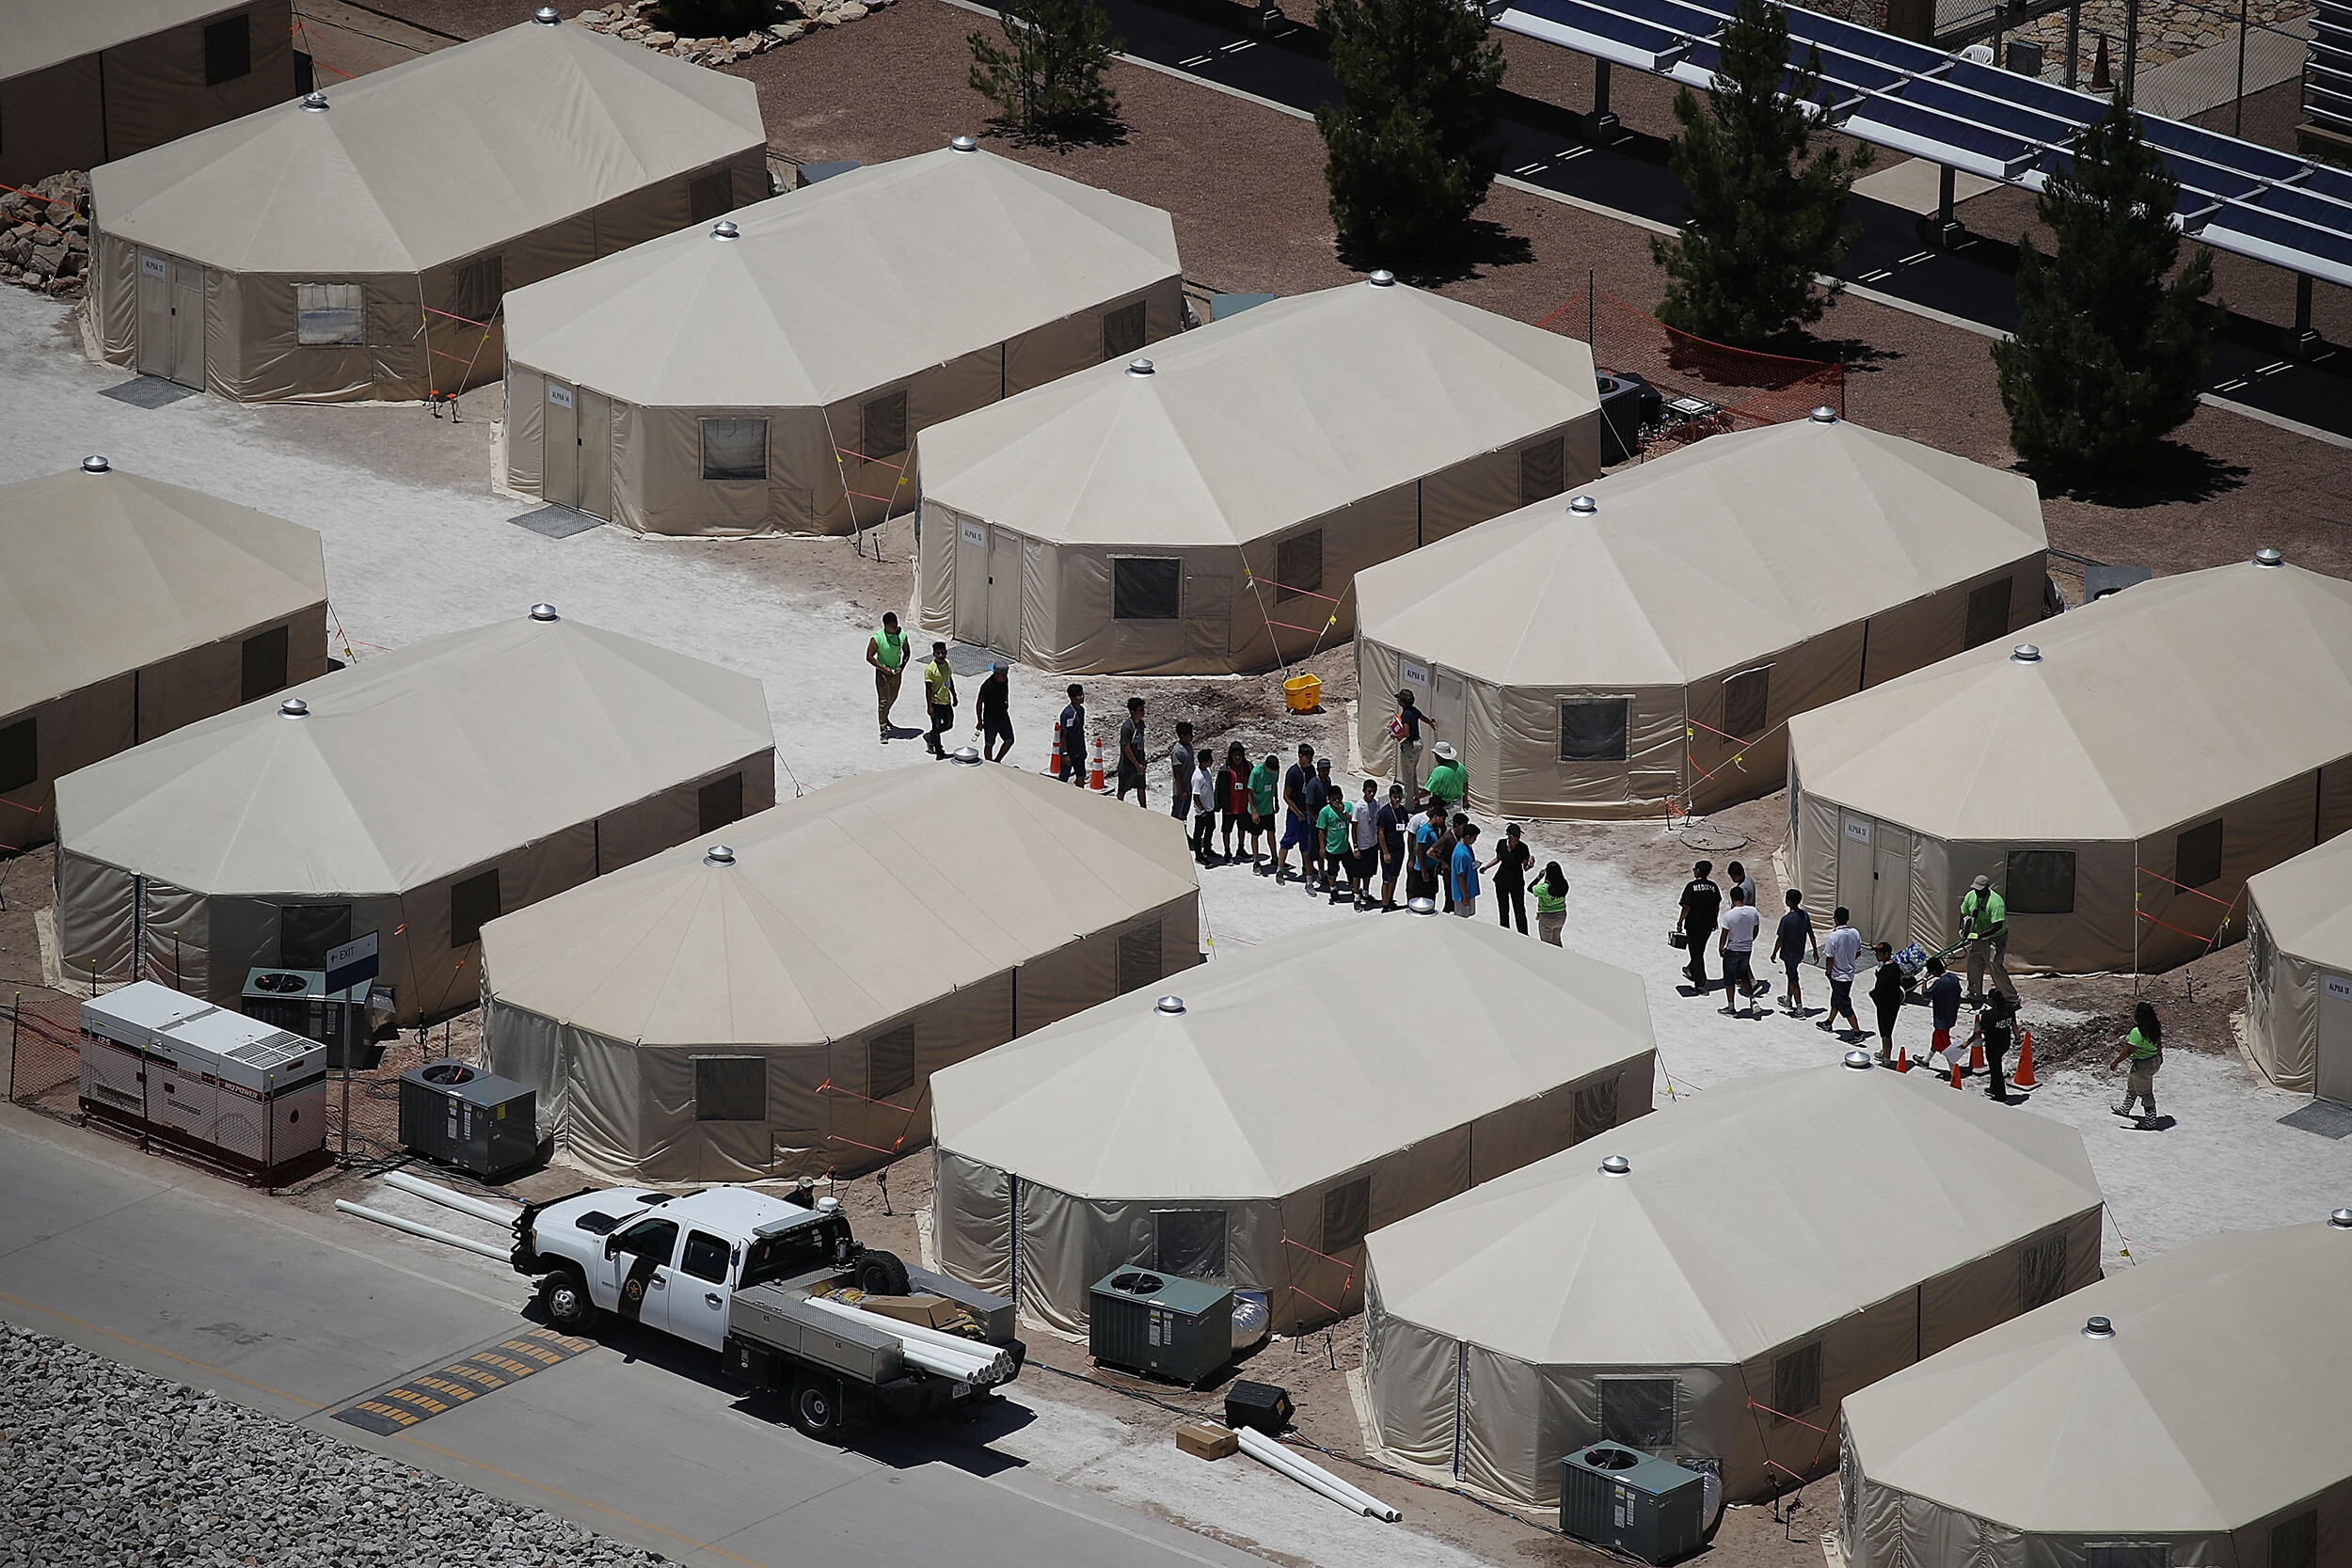 Parents of 303 migrant children separated at border under Trump have still not been found, court filing says